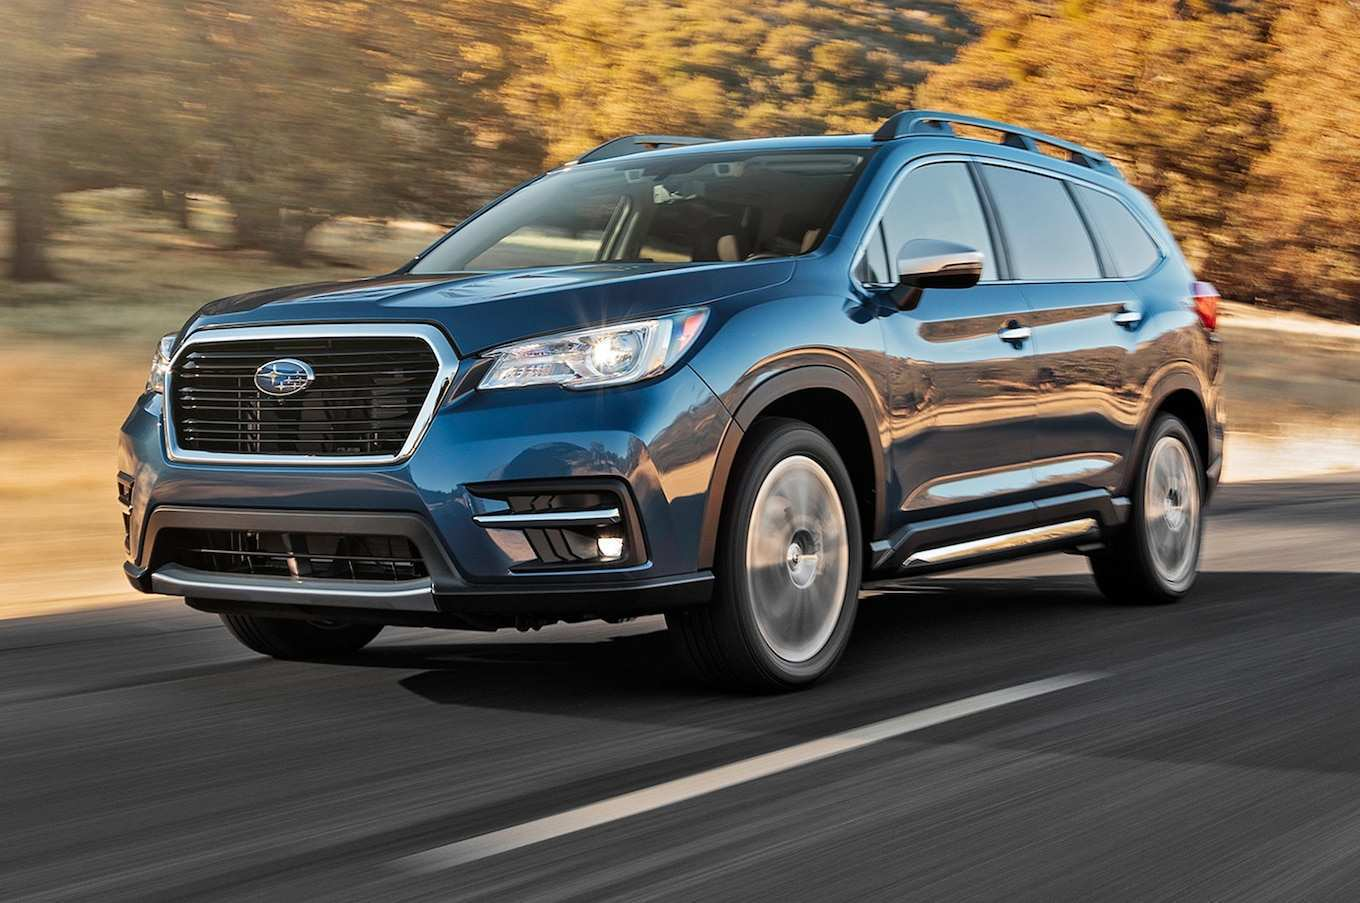 95 A 2019 Subaru Ascent Exterior And Interior